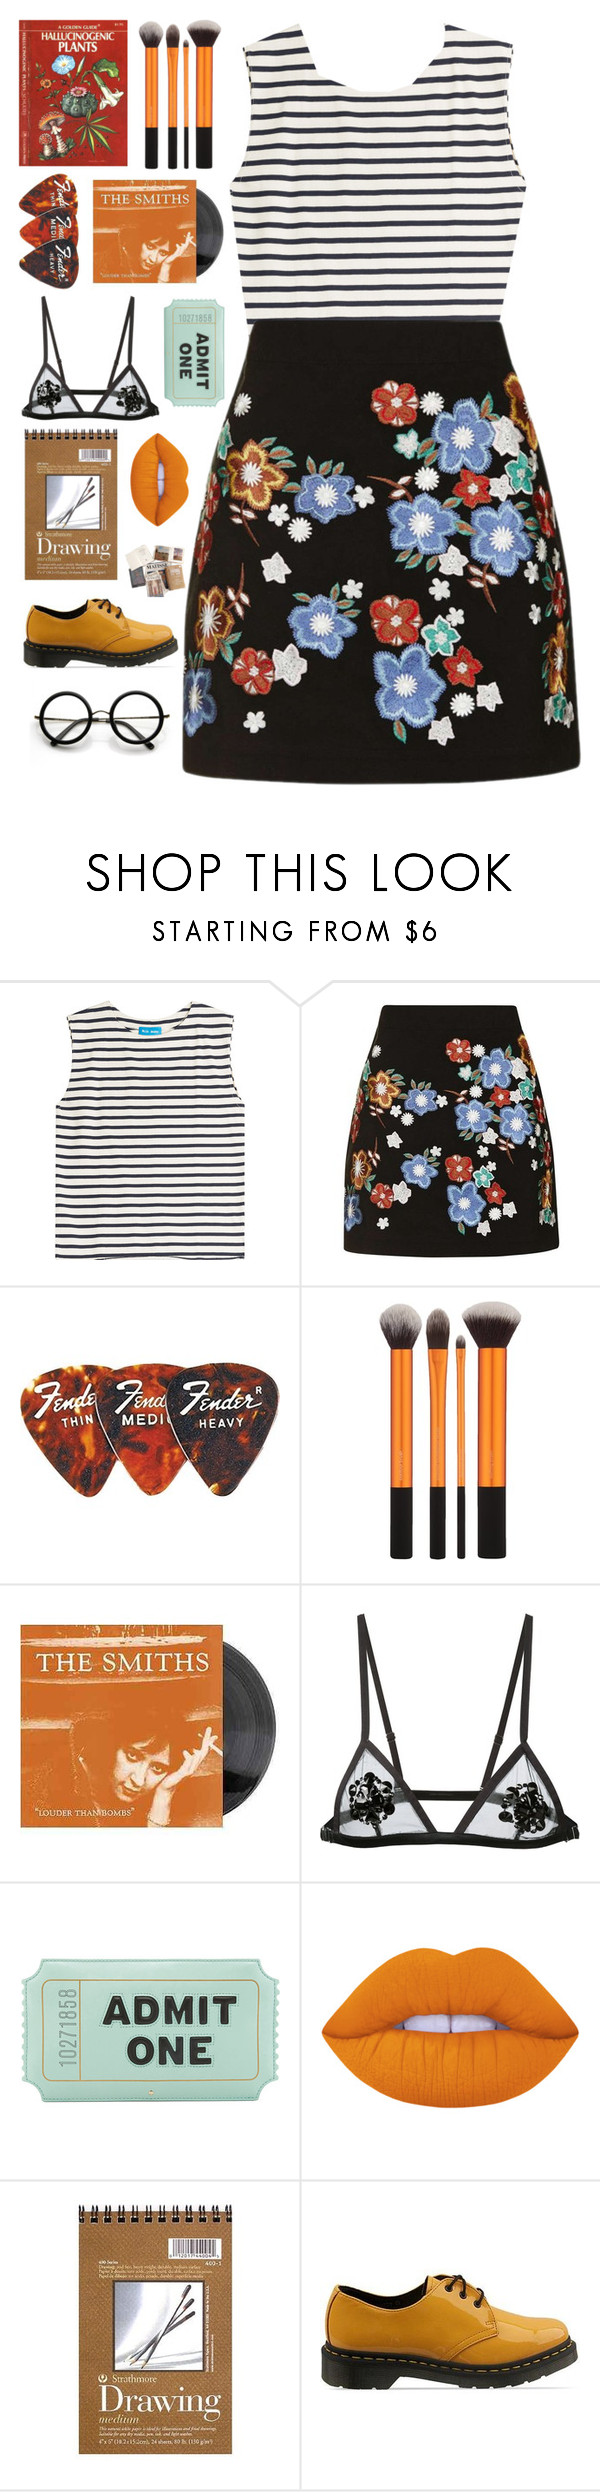 """your eyes are gazing back, from every little piece of glass"" by xxharrietxx ❤ liked on Polyvore featuring M.i.h Jeans, Topshop, Fleur du Mal, Kate Spade, Lime Crime, Dr. Martens and ZeroUV"